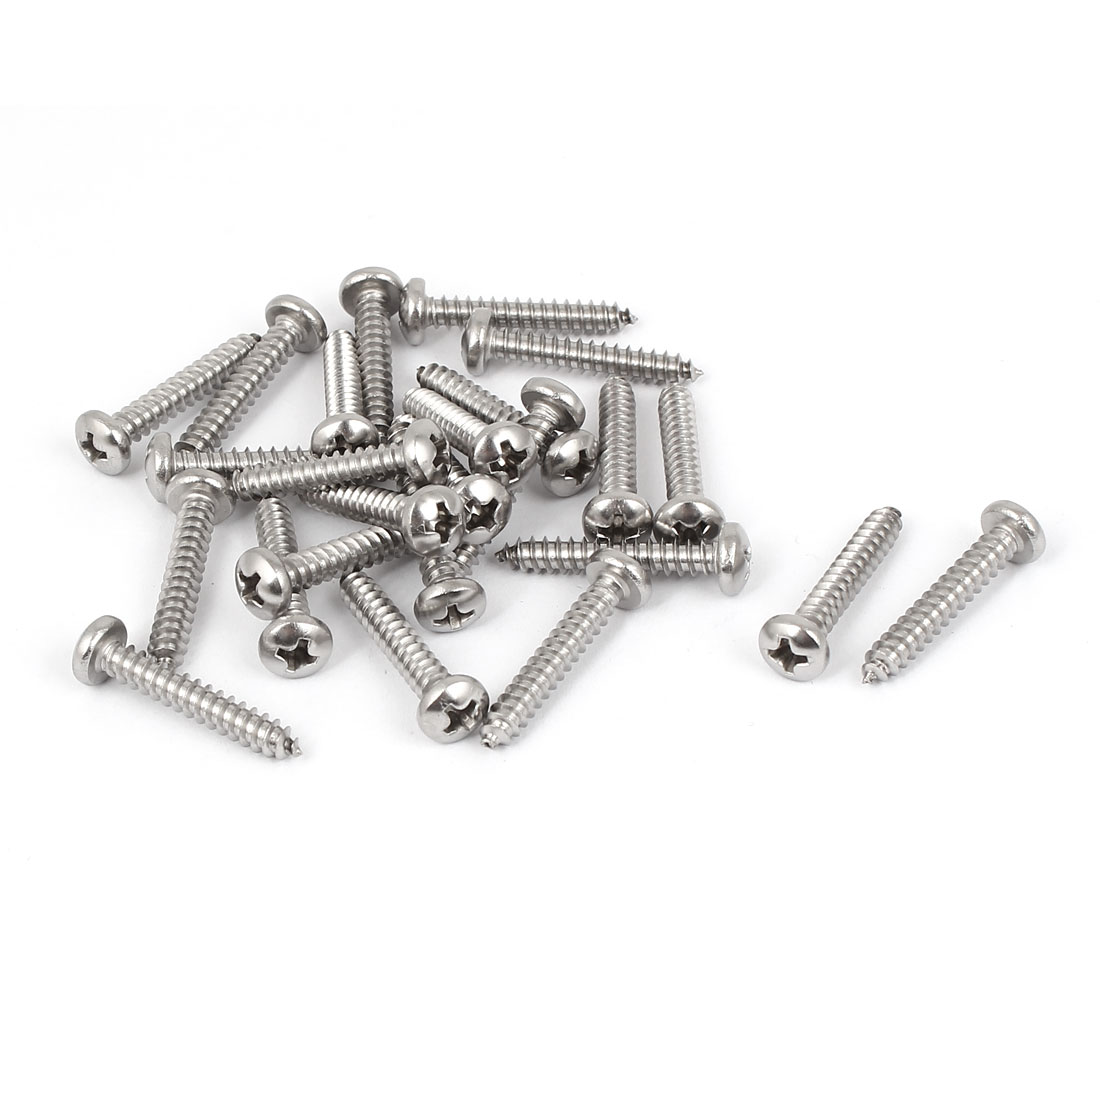 #8 M4.2x25mm Stainless Steel Phillips Round Pan Head Self Tapping Screws 25pcs